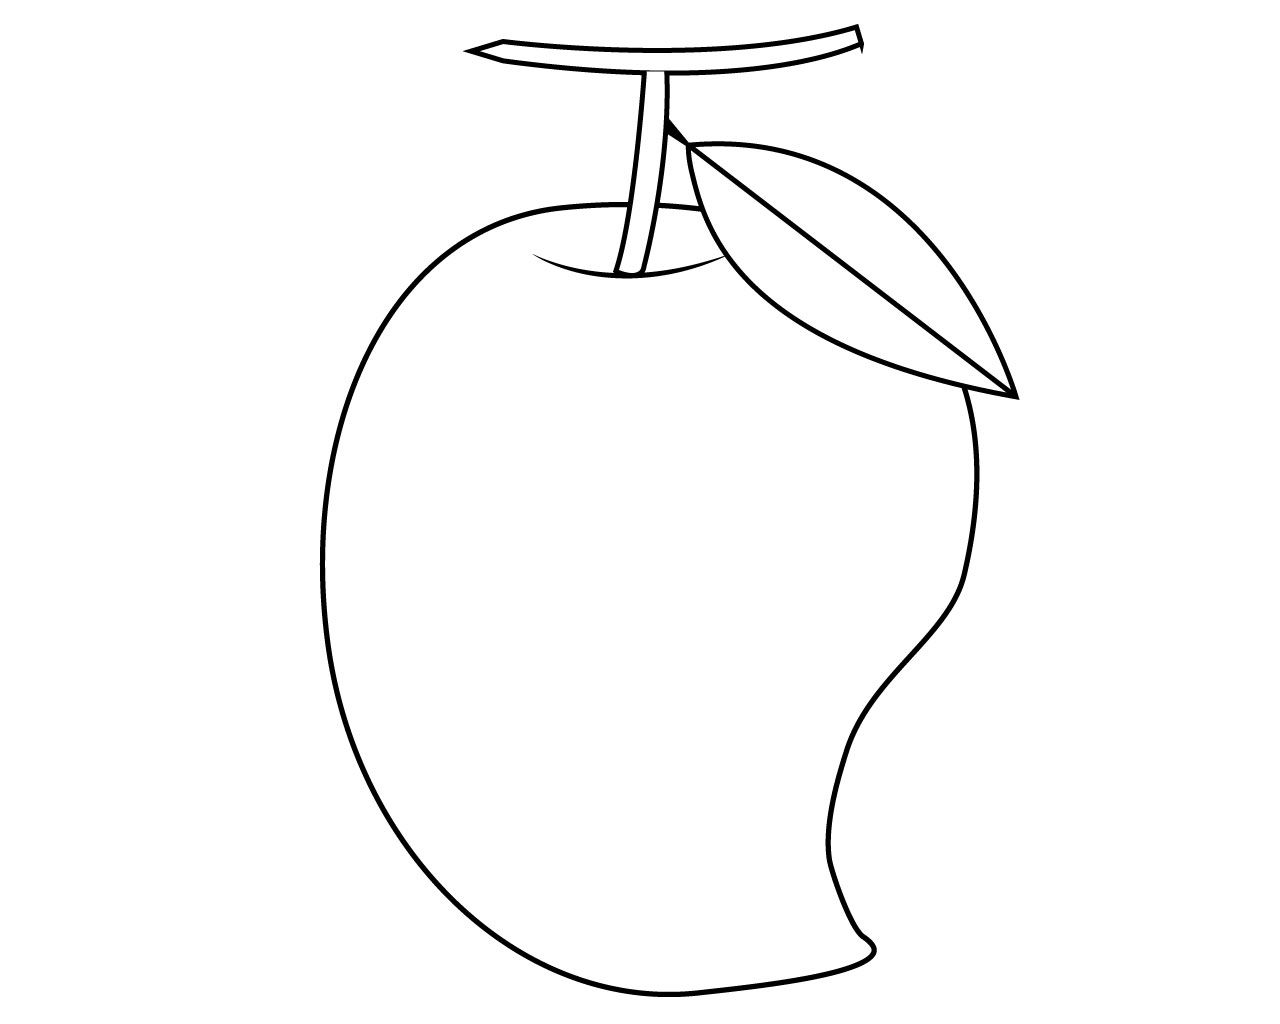 Free Printable Fruits Coloring Pages For Kids Online